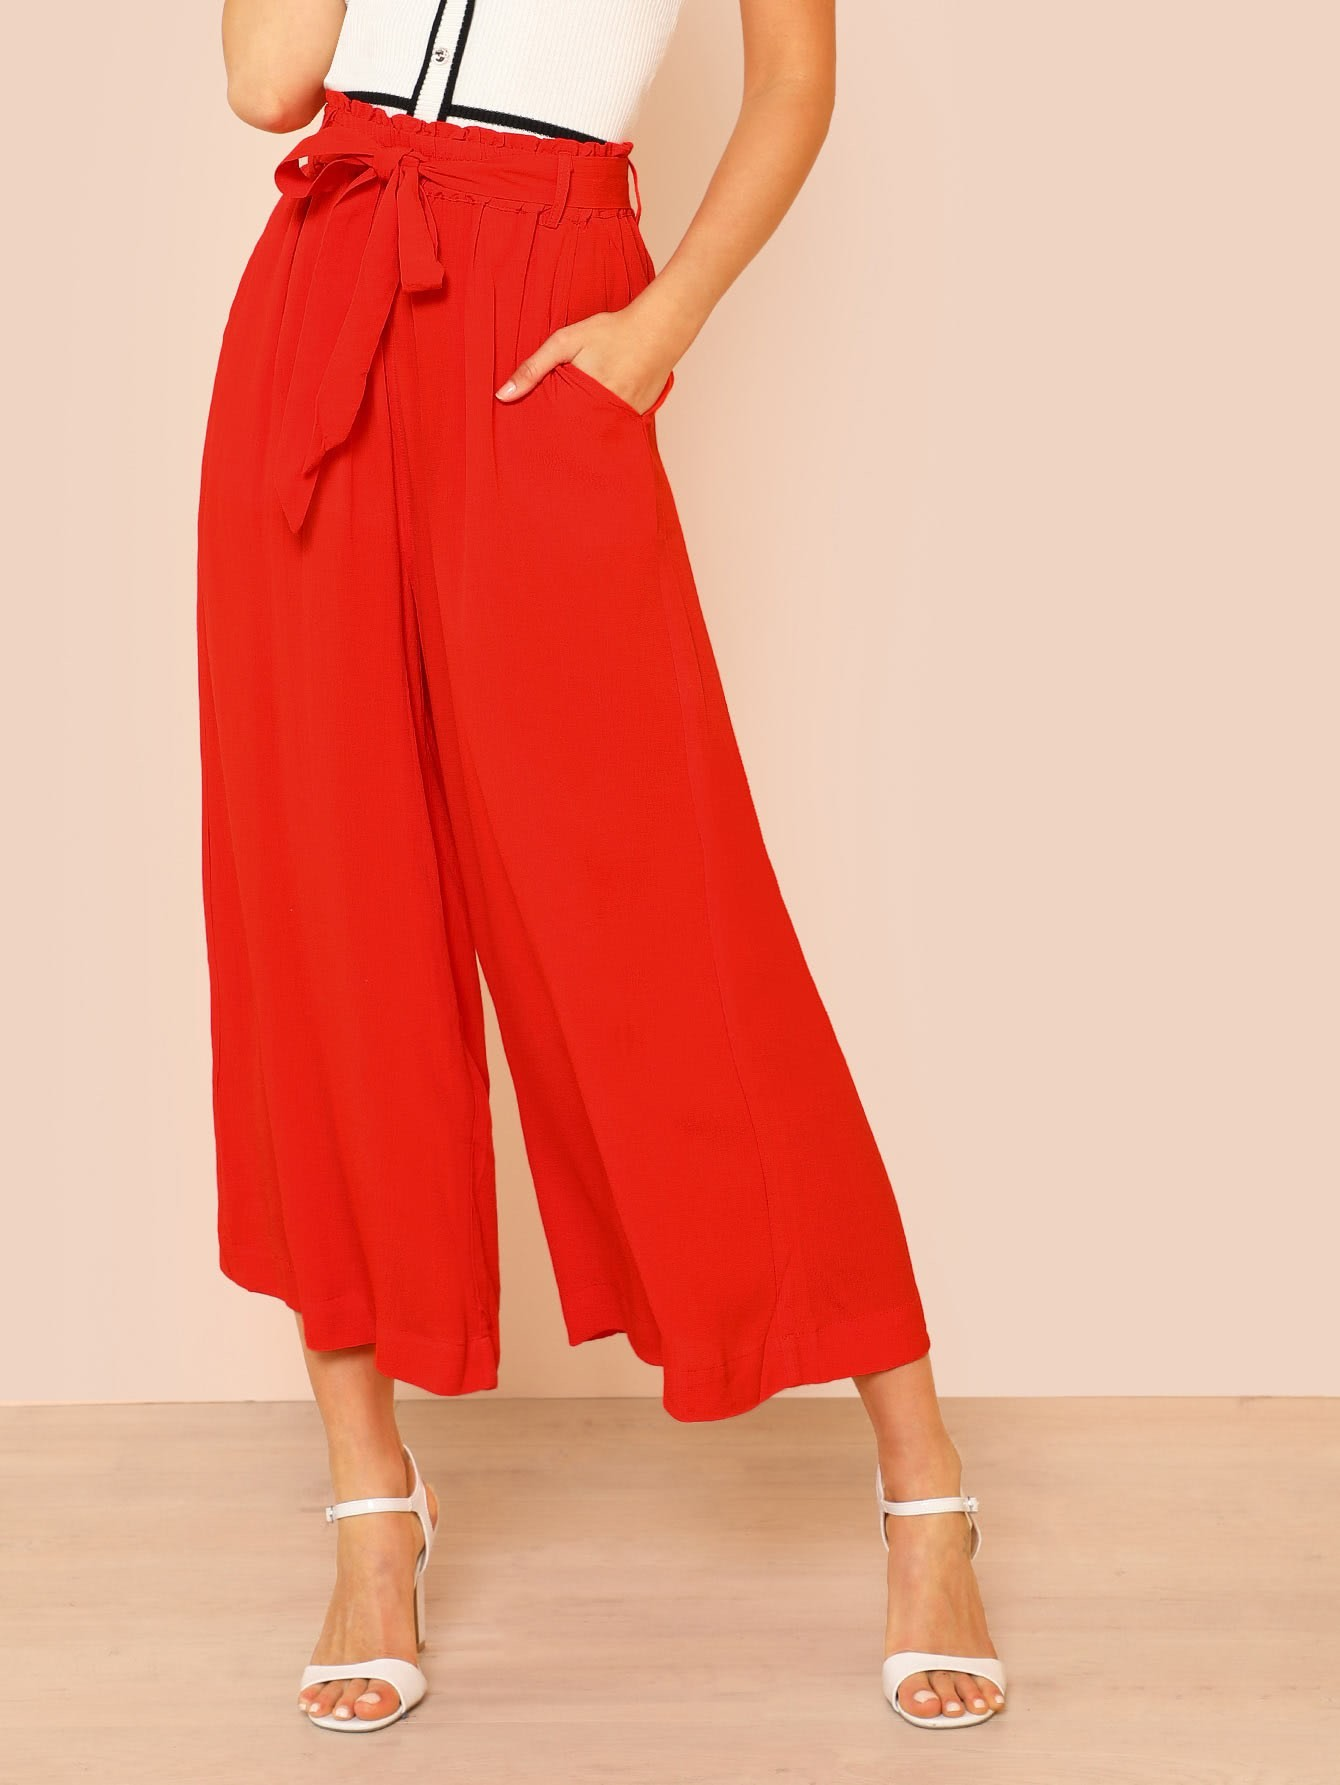 Shirred Waist Wide Leg Flowy Pants with Belt yellow grid skinny leg pants with belt